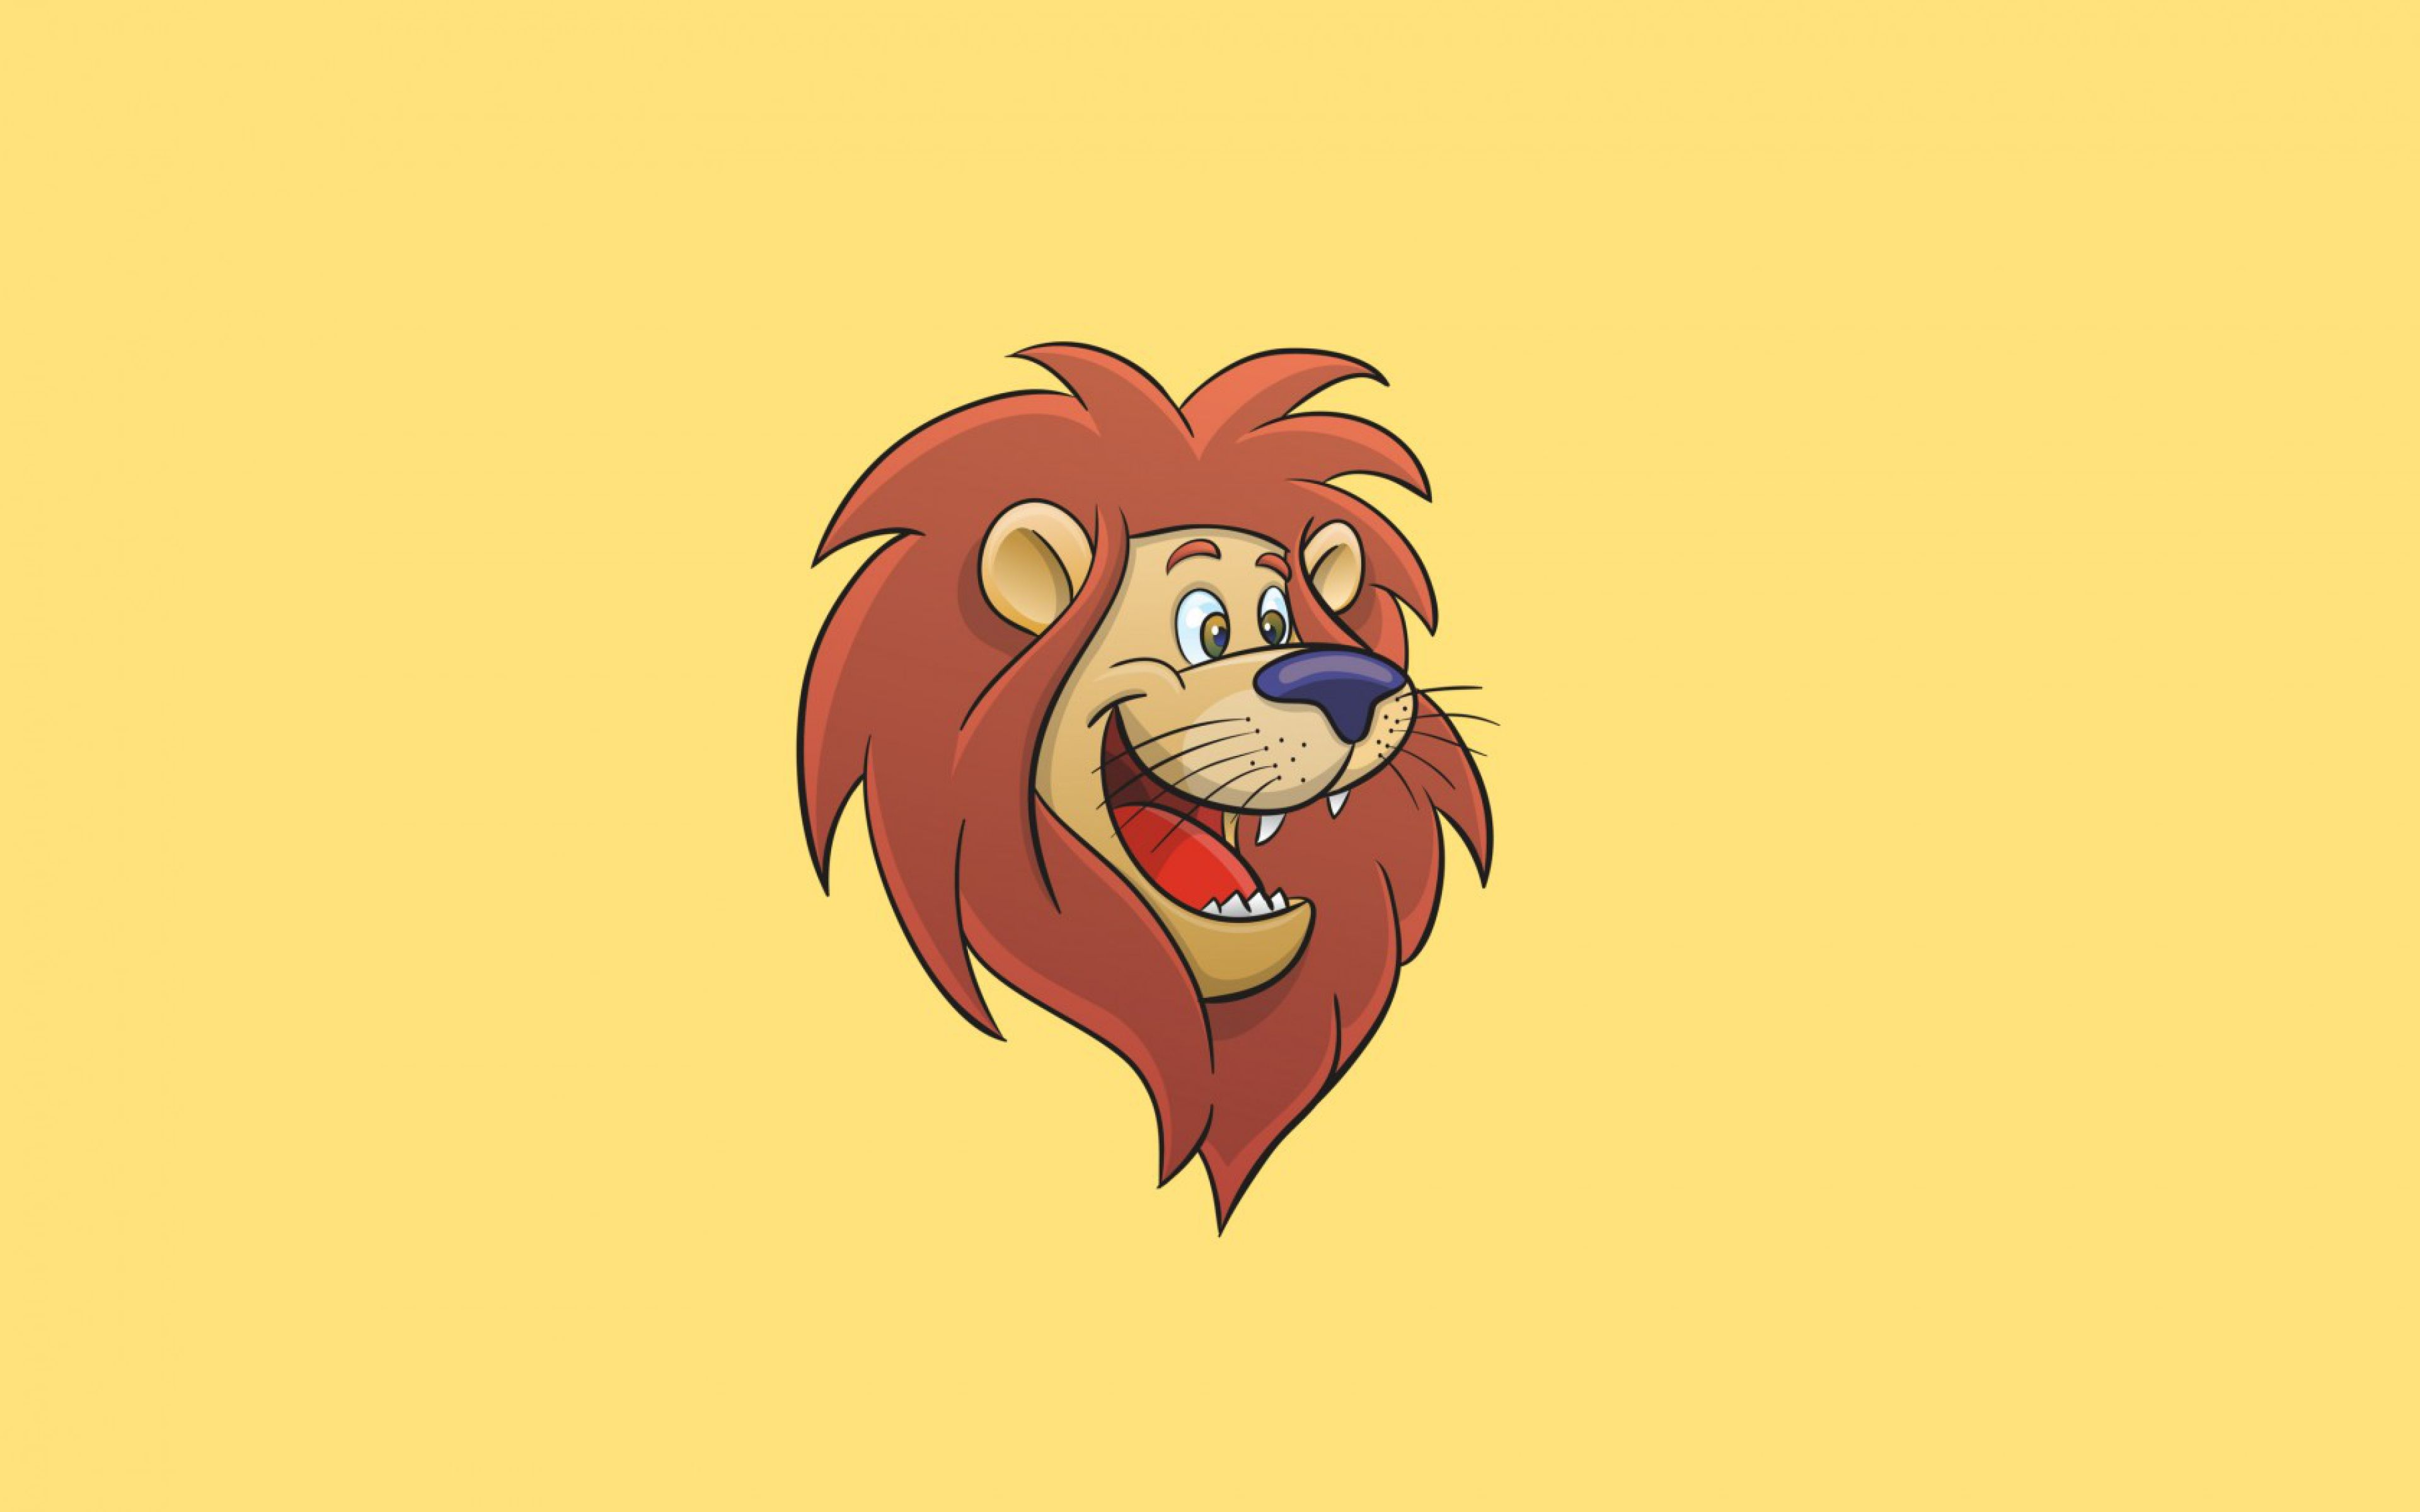 high quality wallpapers of famous cartoon characters the